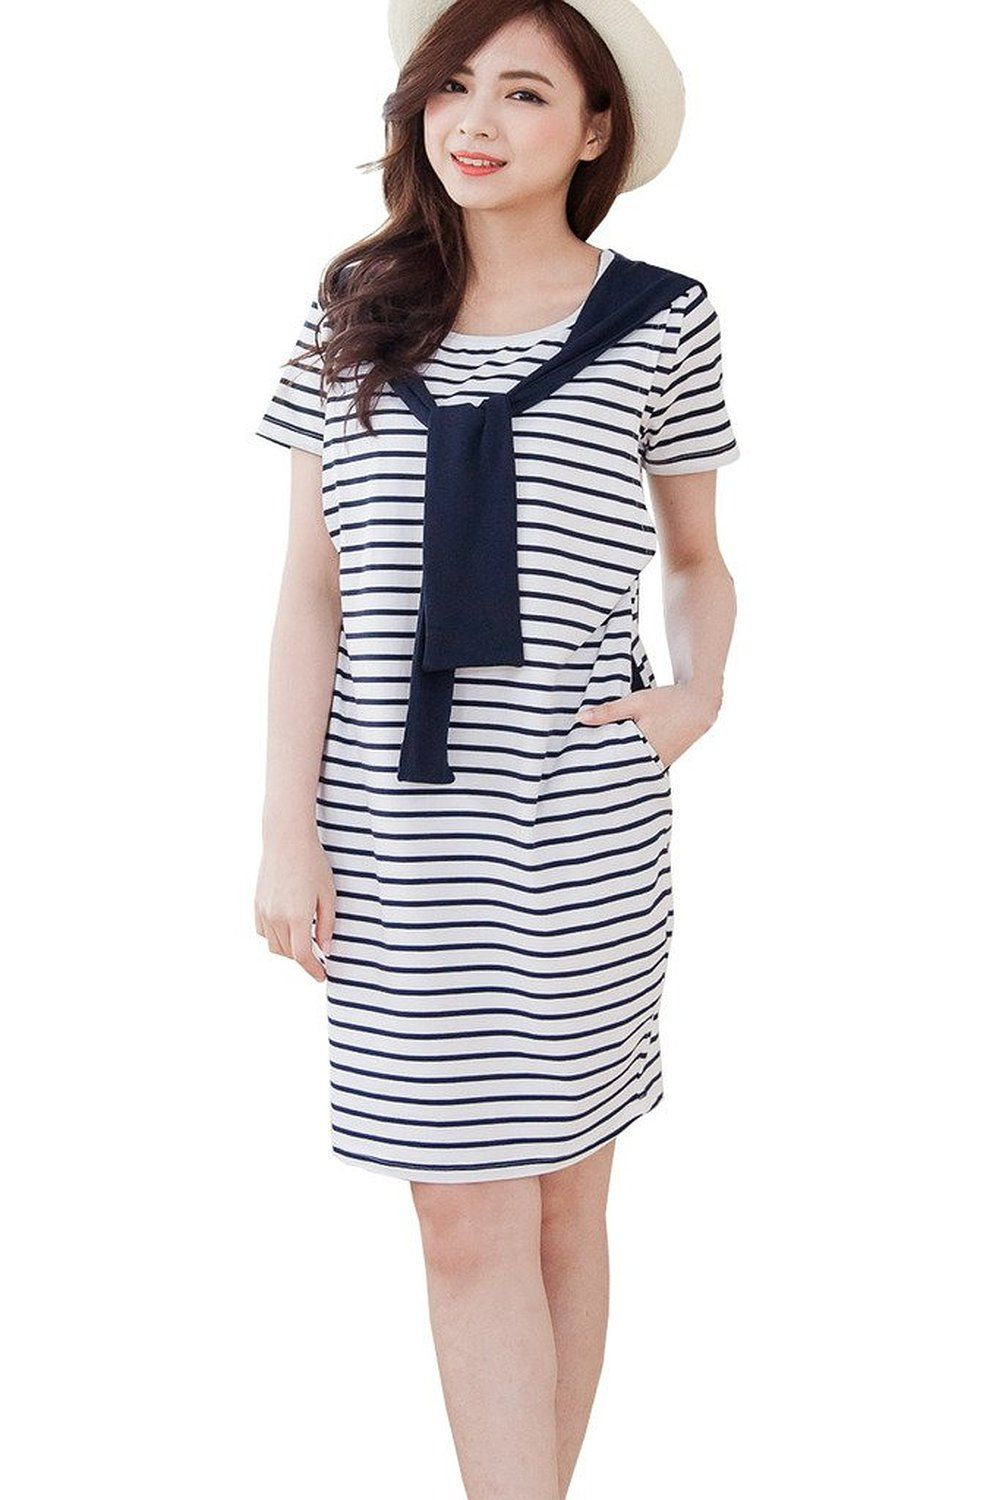 4d978797be54b Bearsland Women s Striped Pattern Short Sleeves Breastfeeding Nursing Dress  at Amazon Women s Clothing store